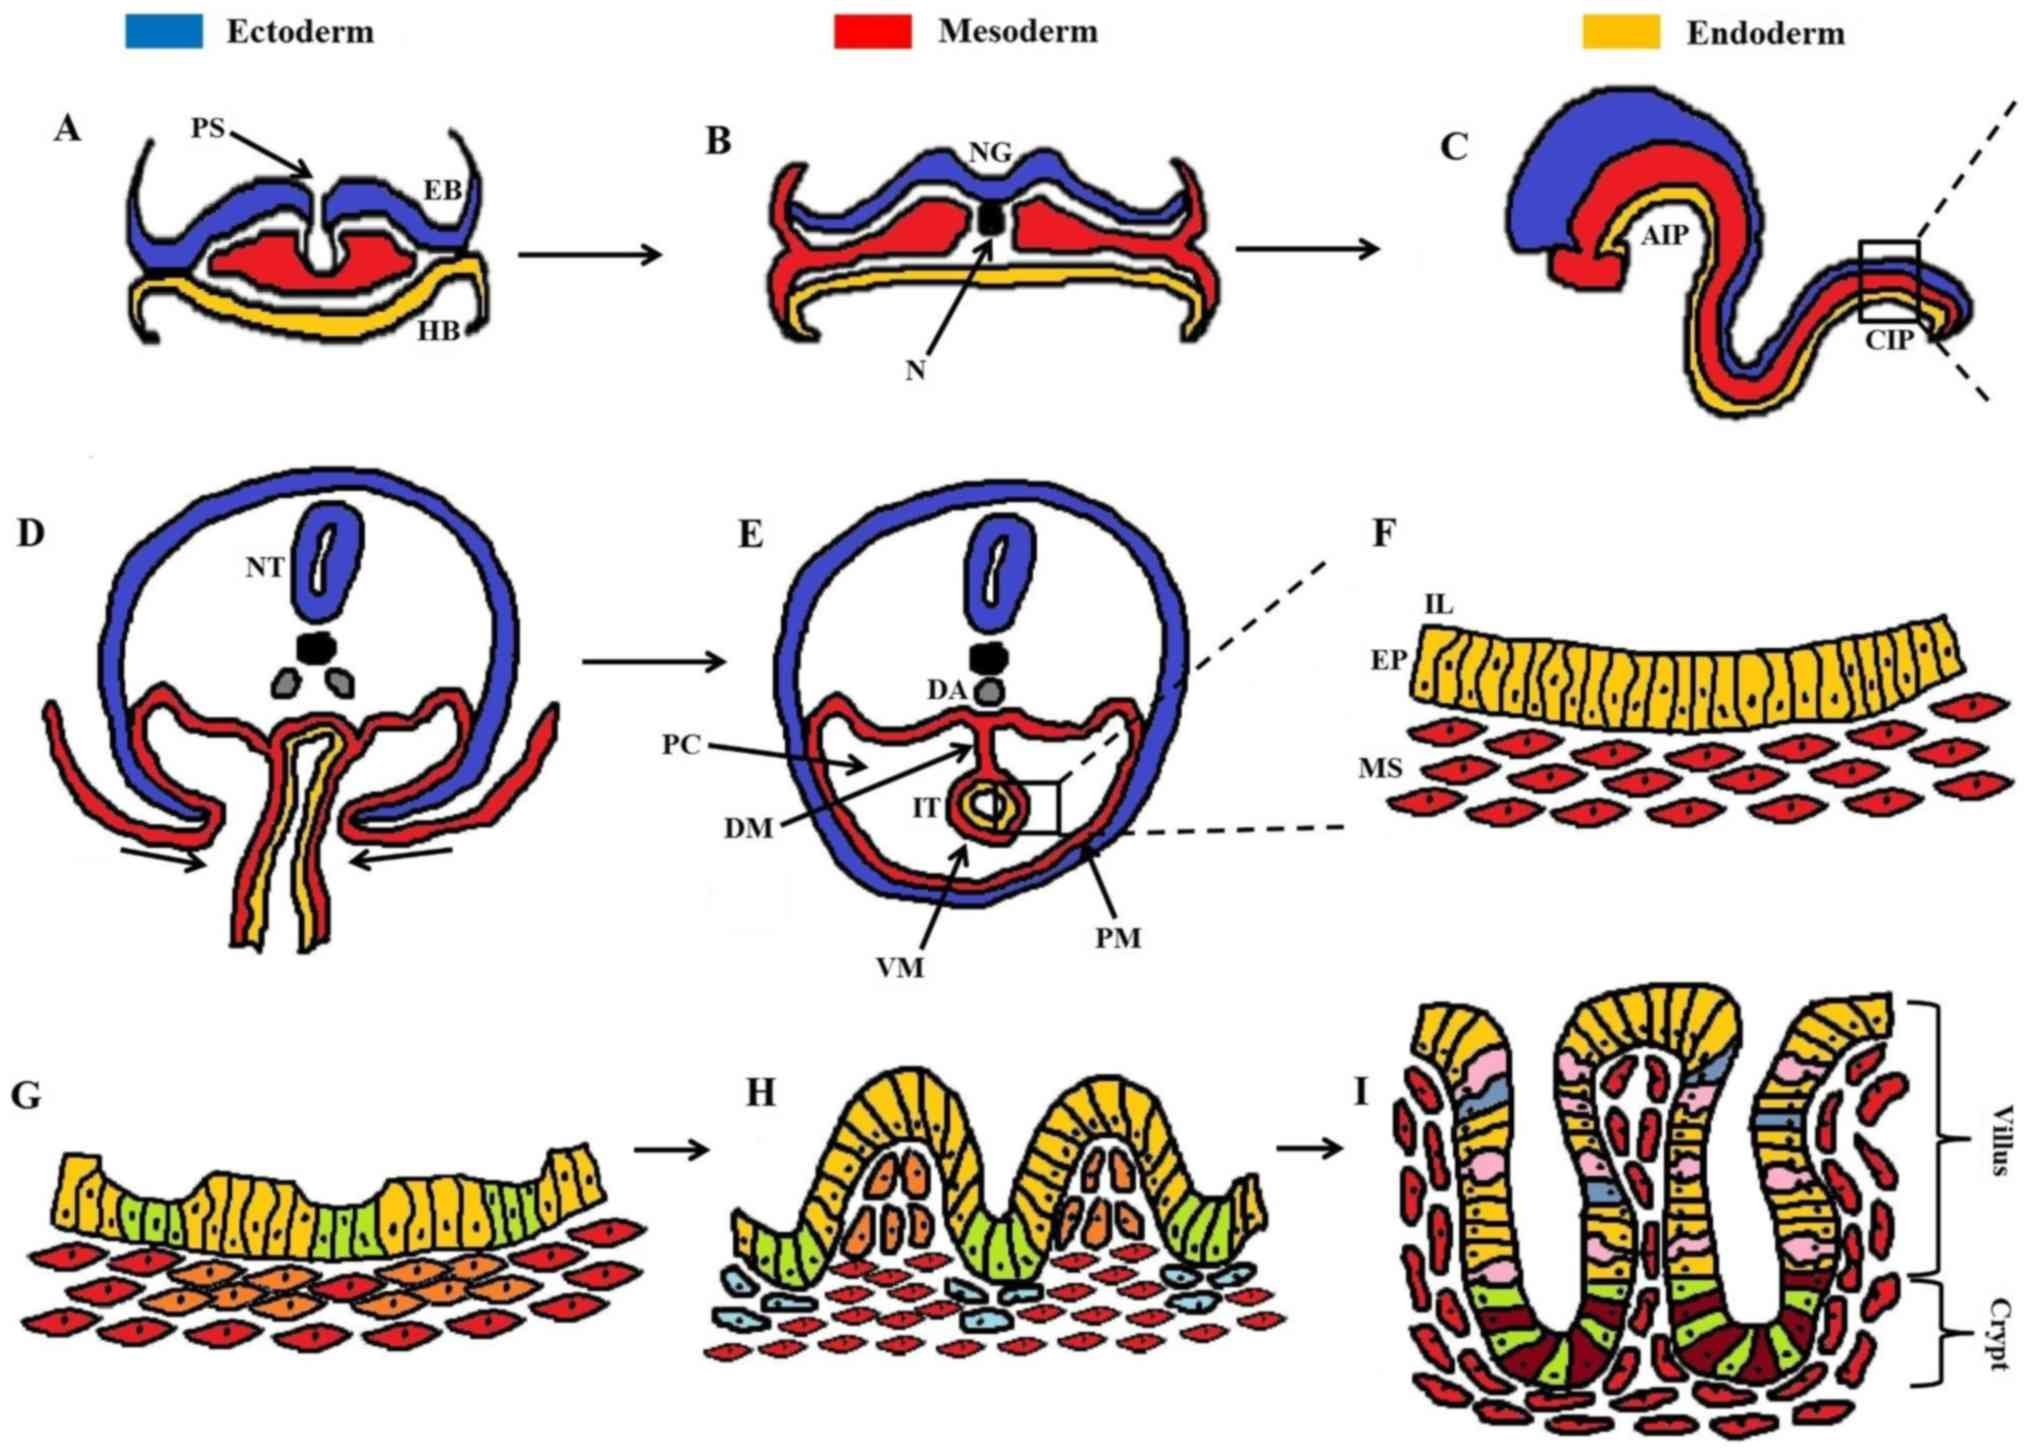 Large Intestine Embryogenesis Molecular Pathways And Related Disorders Review